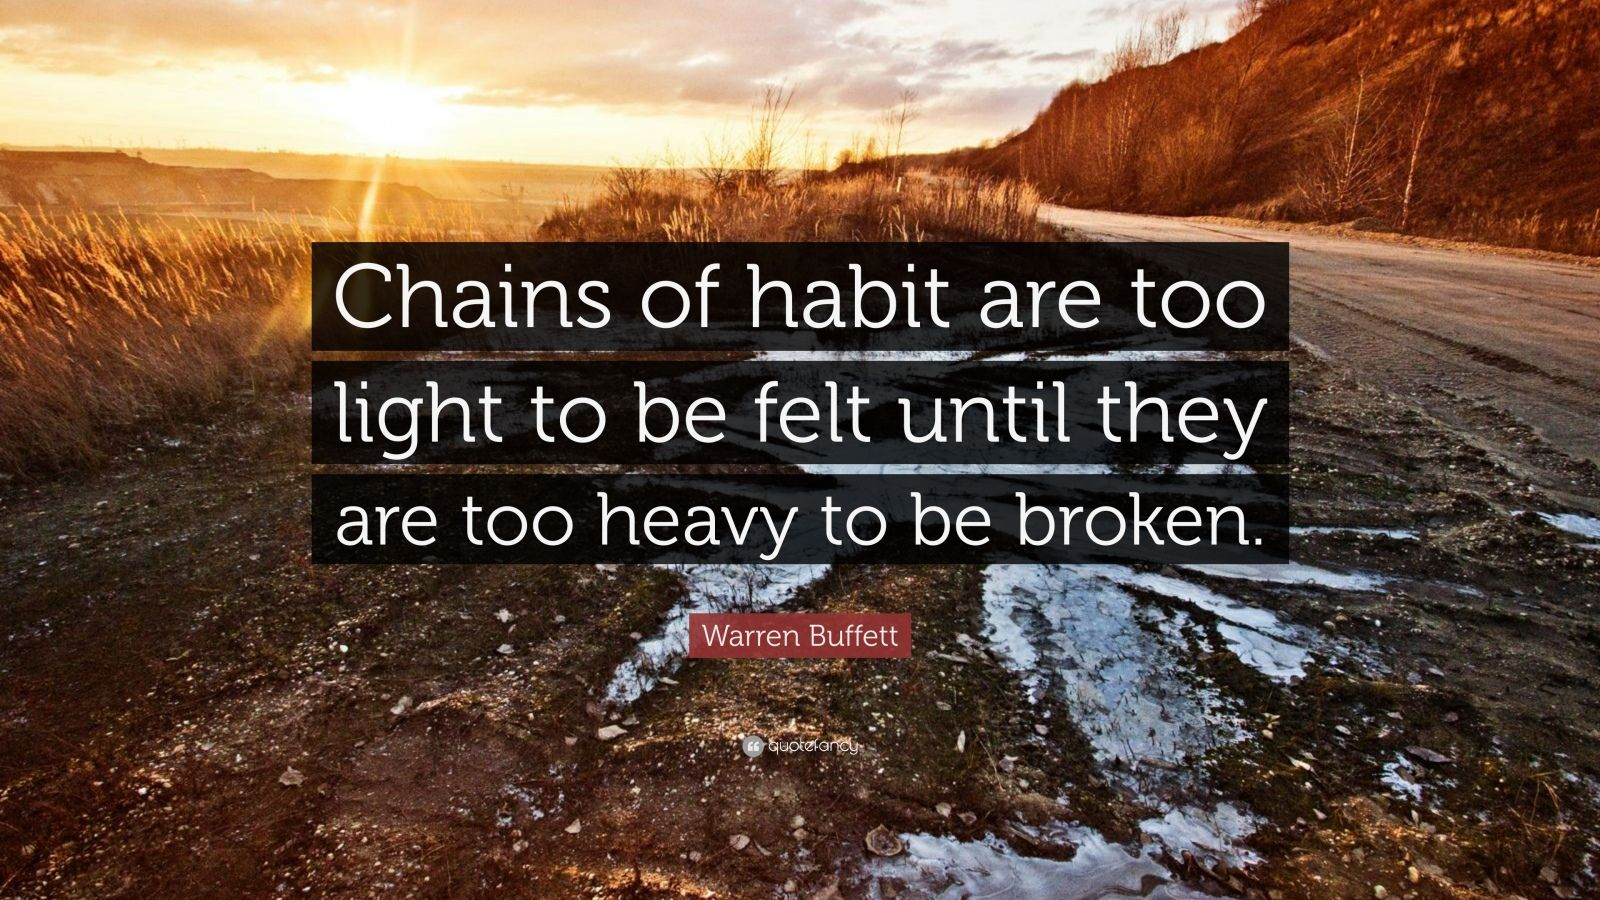 Steve Jobs Wallpaper Quotes Warren Buffett Quote Chains Of Habit Are Too Light To Be